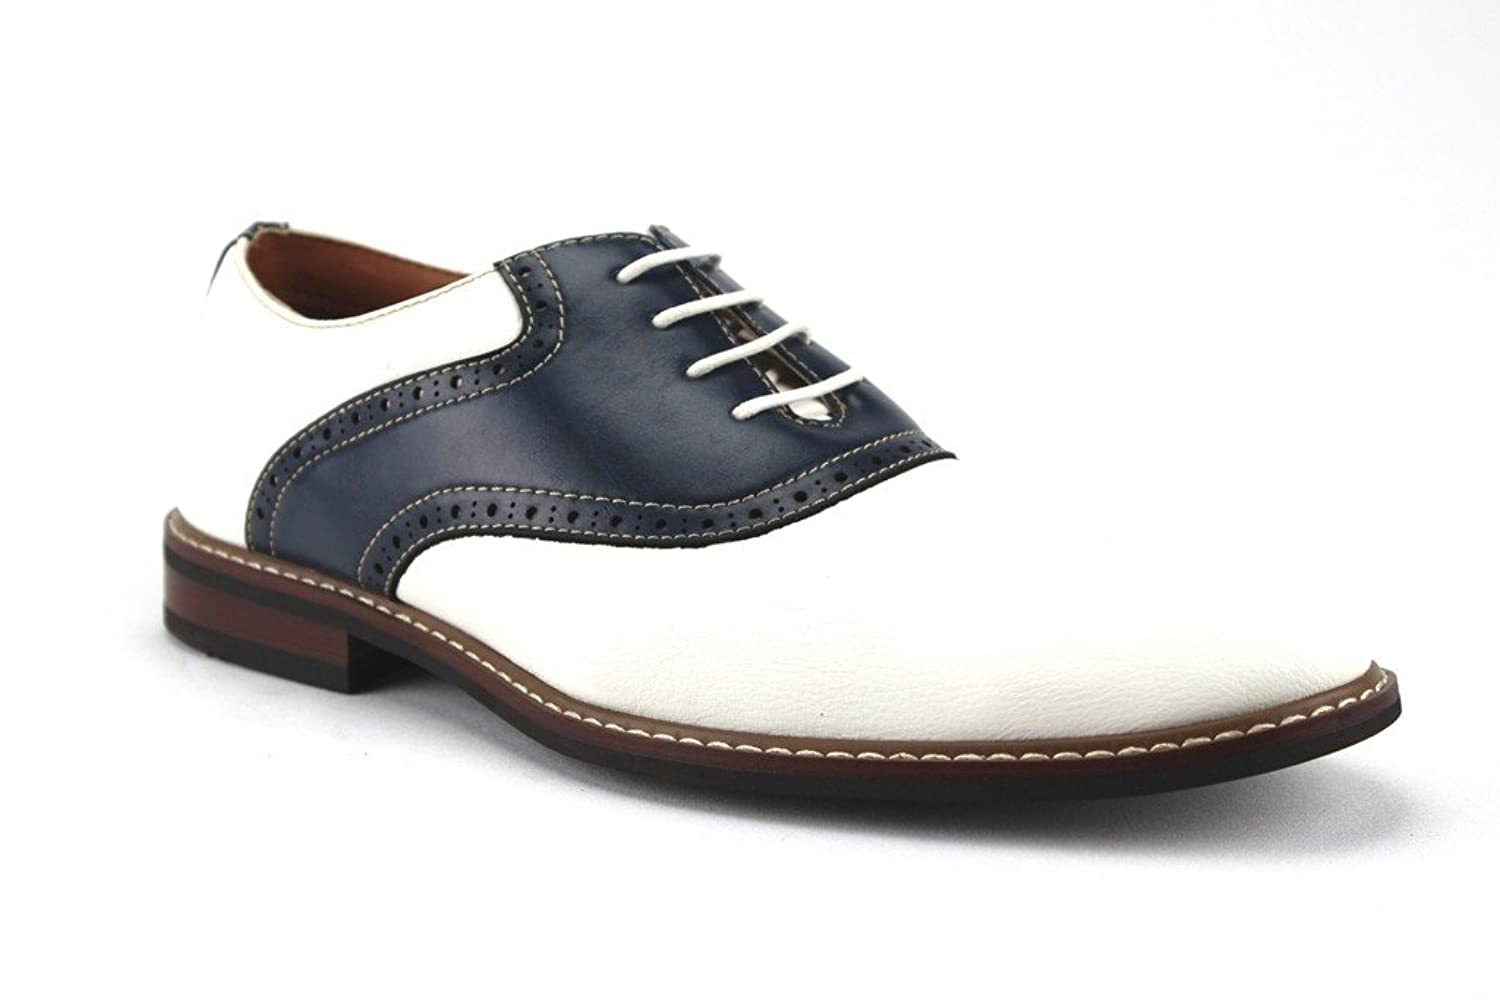 Retro Clothing for Men | Vintage Men's Fashion Ferro Aldo Mens 19268A Two Tone Saddle Lace Up Oxfords Dress Shoes  AT vintagedancer.com